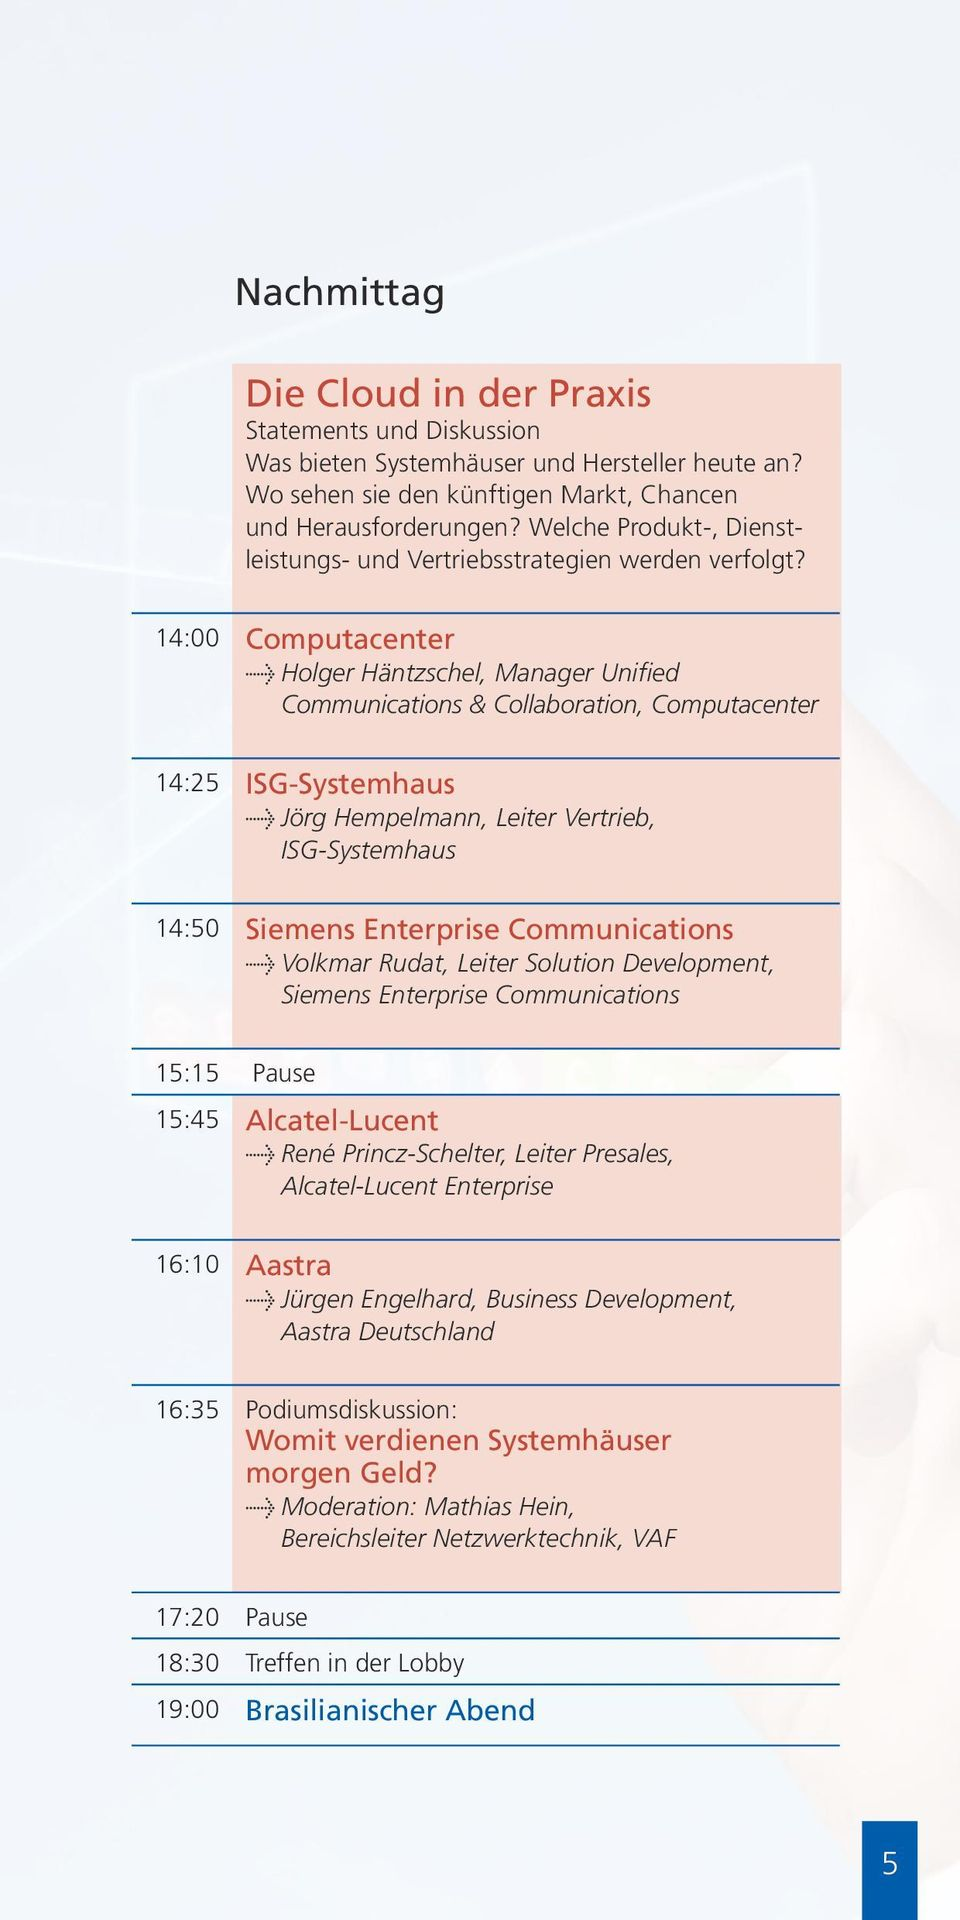 14:00 Computacenter l Holger Häntzschel, Manager Unified Communications & Collaboration, Computacenter 14:25 ISG-Systemhaus l Jörg Hempelmann, Leiter Vertrieb, ISG-Systemhaus 14:50 Siemens Enterprise